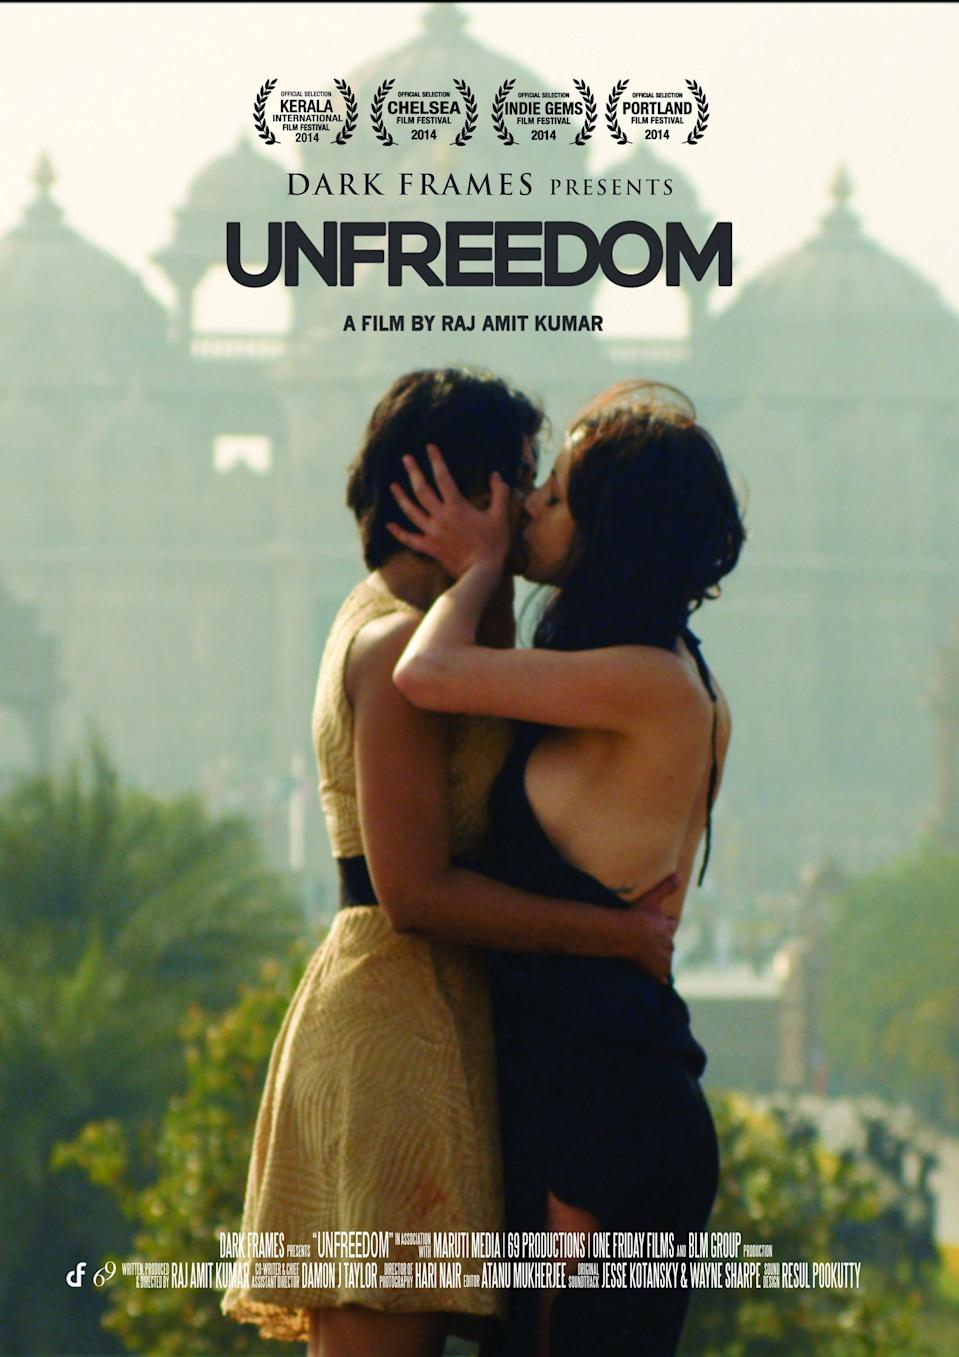 """<p>Despite her father's efforts to force her into an arranged marriage, this flick tells the story of a woman who kidnaps her bisexual lover in an attempt to be together.</p> <p><a href=""""https://www.netflix.com/title/80041337"""" class=""""link rapid-noclick-resp"""" rel=""""nofollow noopener"""" target=""""_blank"""" data-ylk=""""slk:Watch Unfreedom on Netflix now"""">Watch <b>Unfreedom</b> on Netflix now</a>.</p>"""